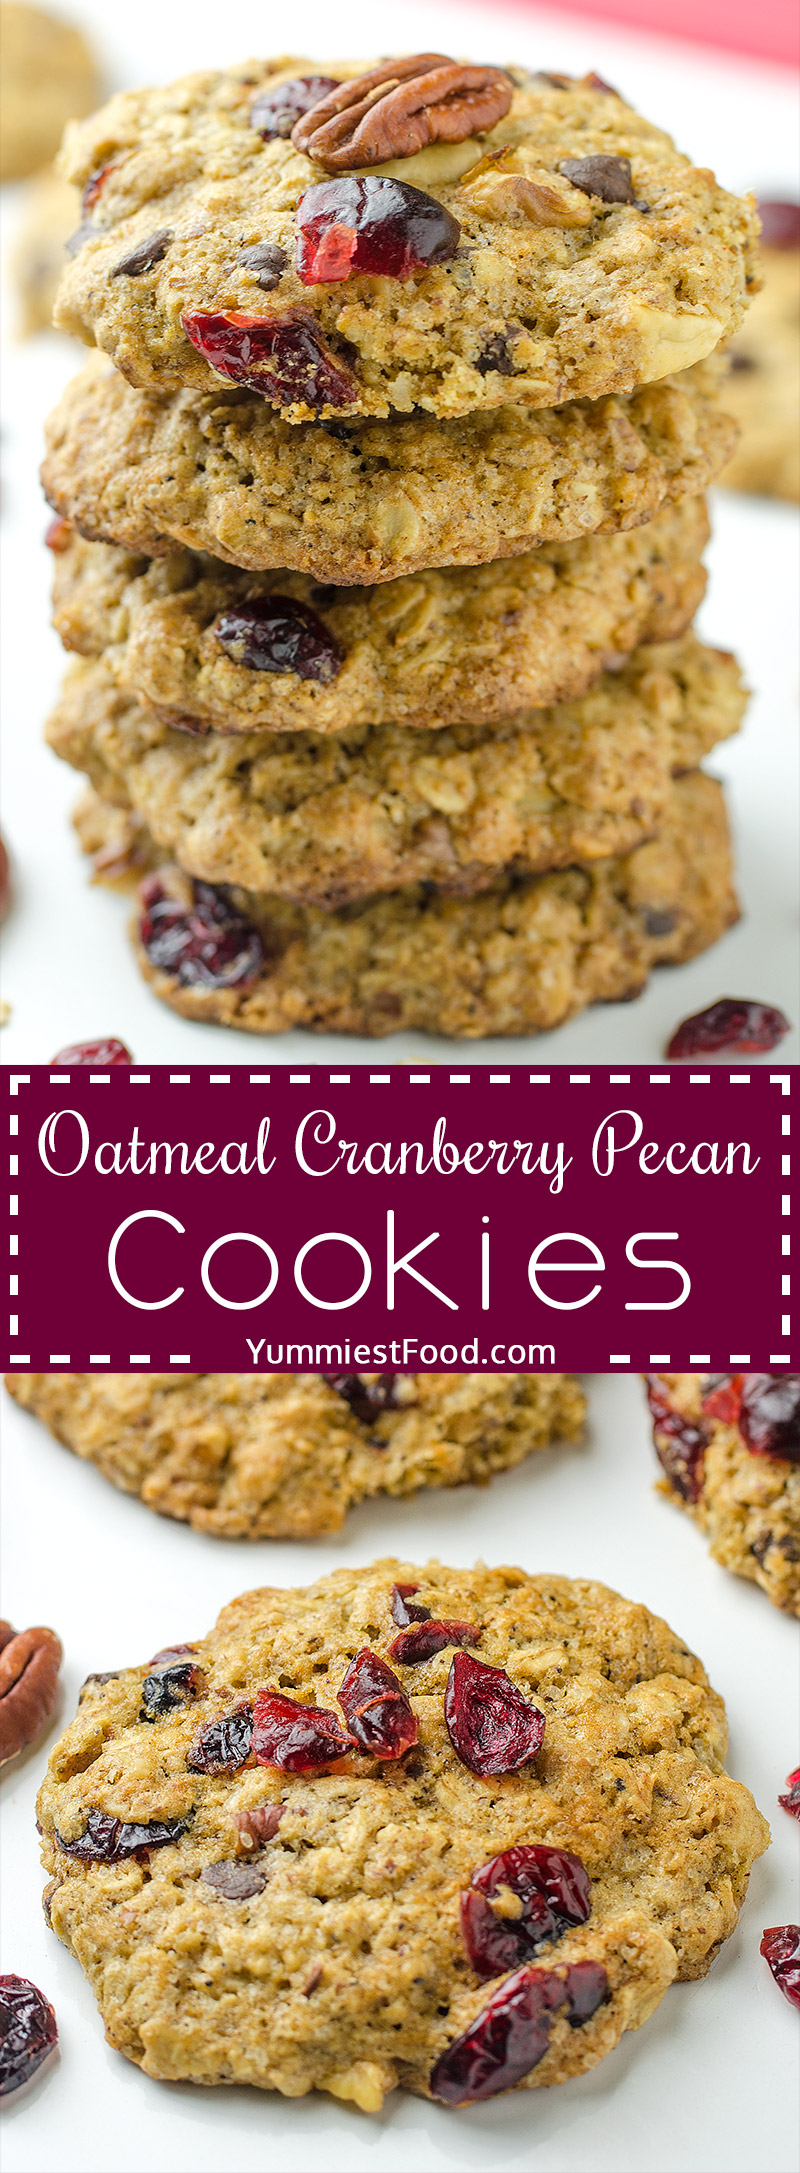 Breakfast Oatmeal Cranberry Pecan Cookies - Soft and chewy oatmeal cookies packed with cranberries, pecans and chocolate chips